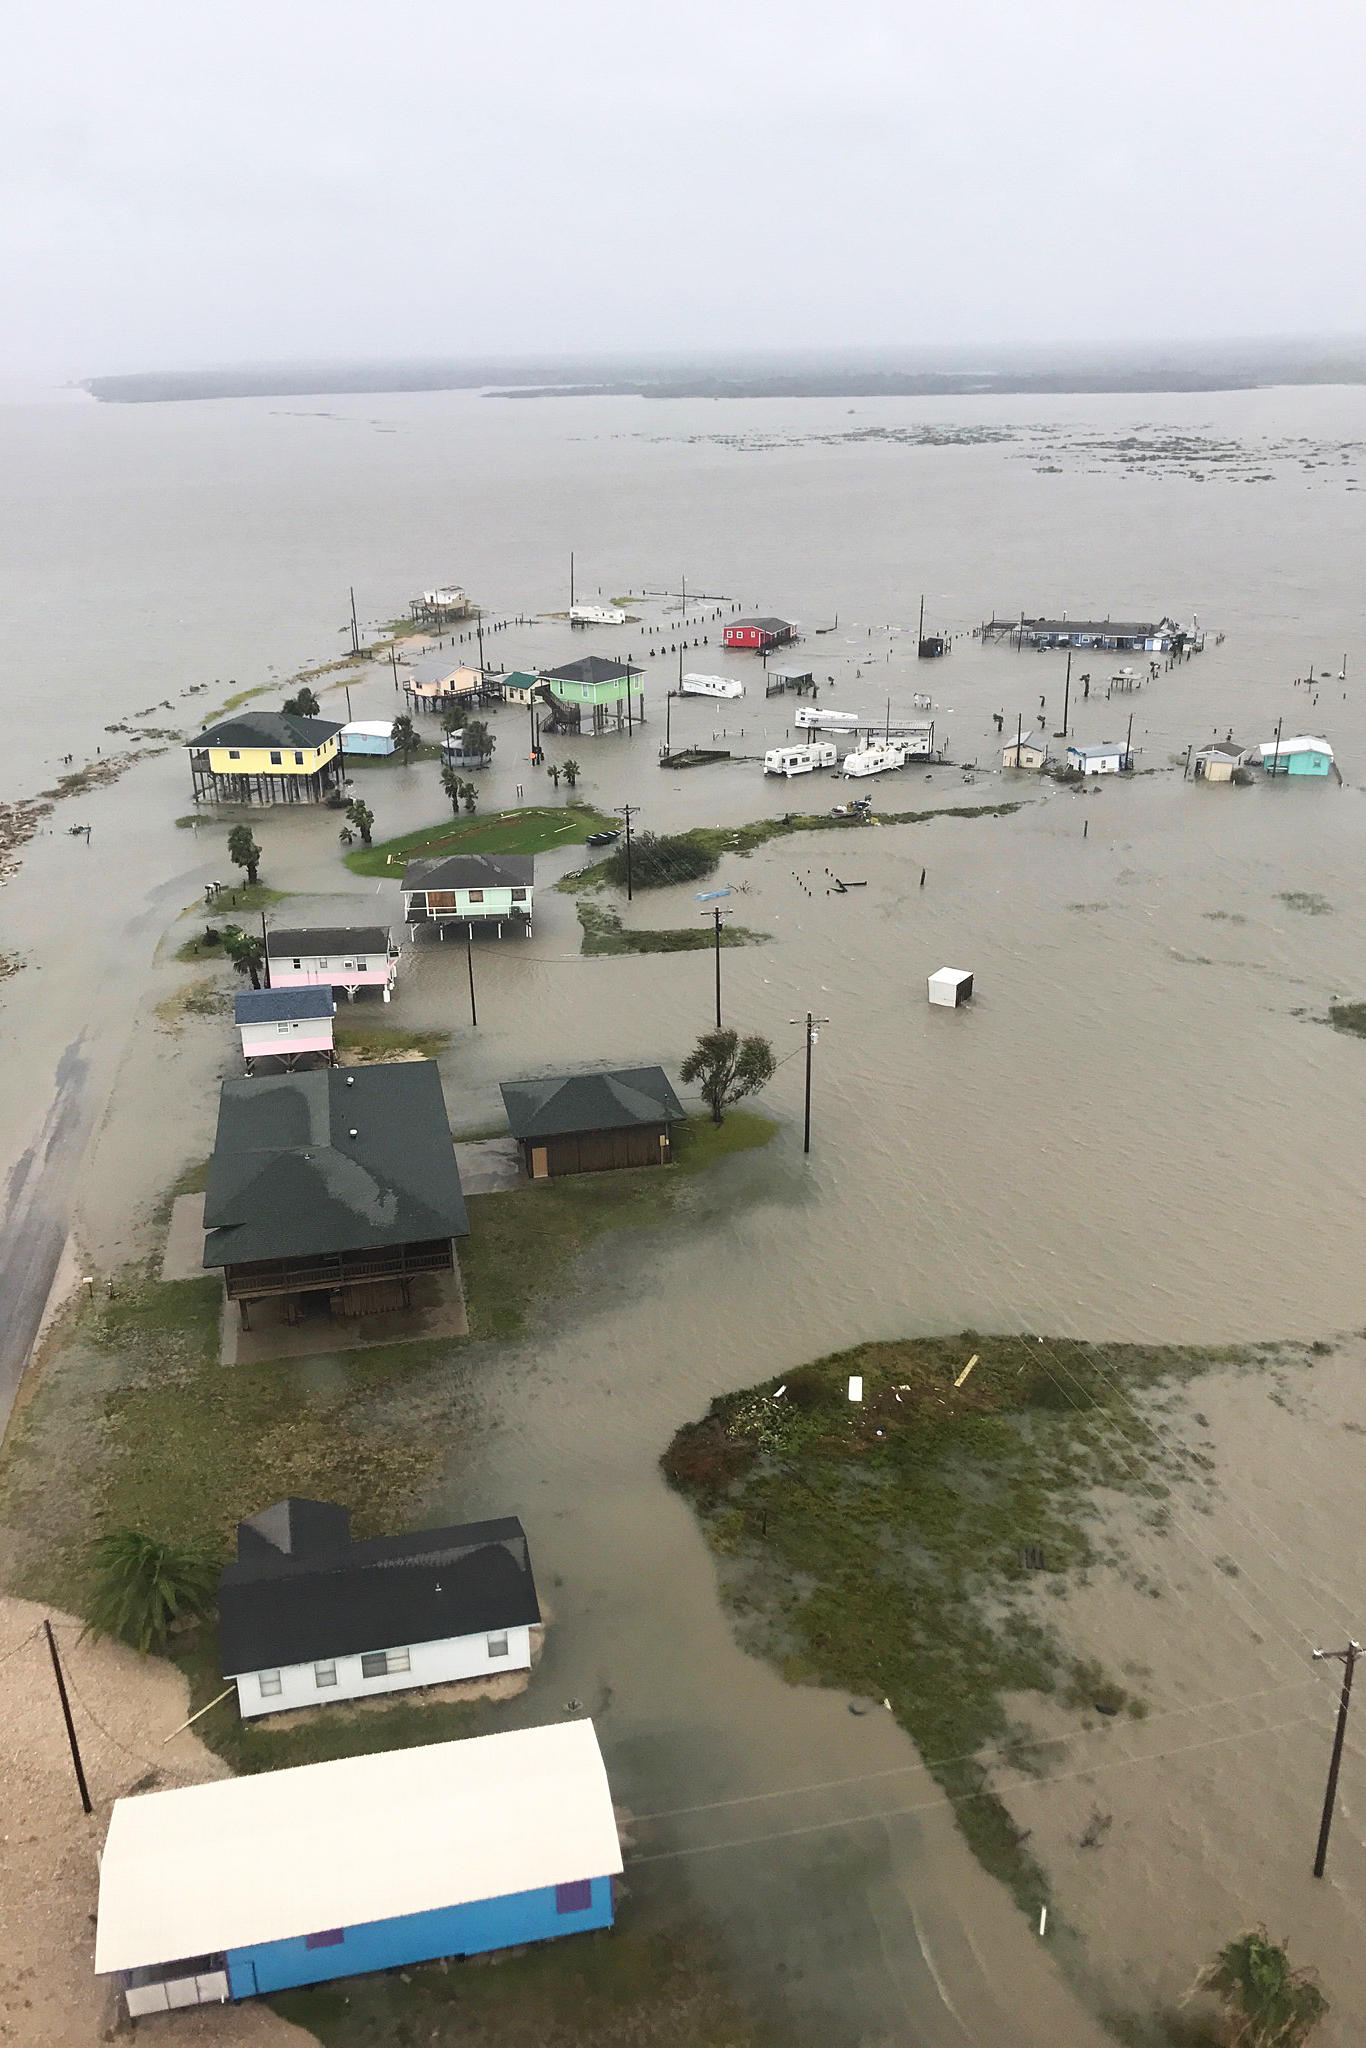 An Aerial View Shows Severe Flooding Caused By Hurricane Harvey Near Rockport Holiday Beach And Port Aransas Texas Aug 27 2017